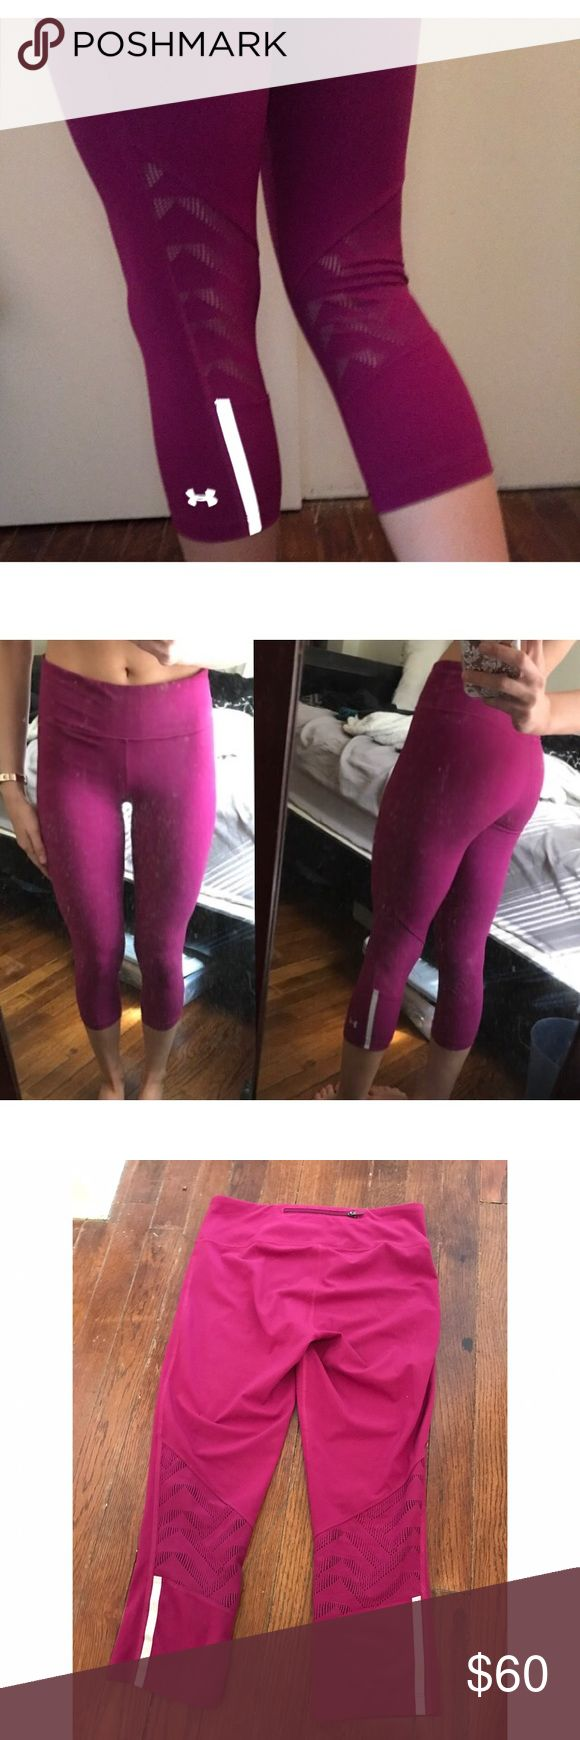 SALE⭐️Under armour compression maroon mesh crops! Size small-only worn once, too baggy for me around the waist so I can't workout in them! They are adorable and light weight :) the mesh on the back is such a cute detail Under Armour Pants Leggings